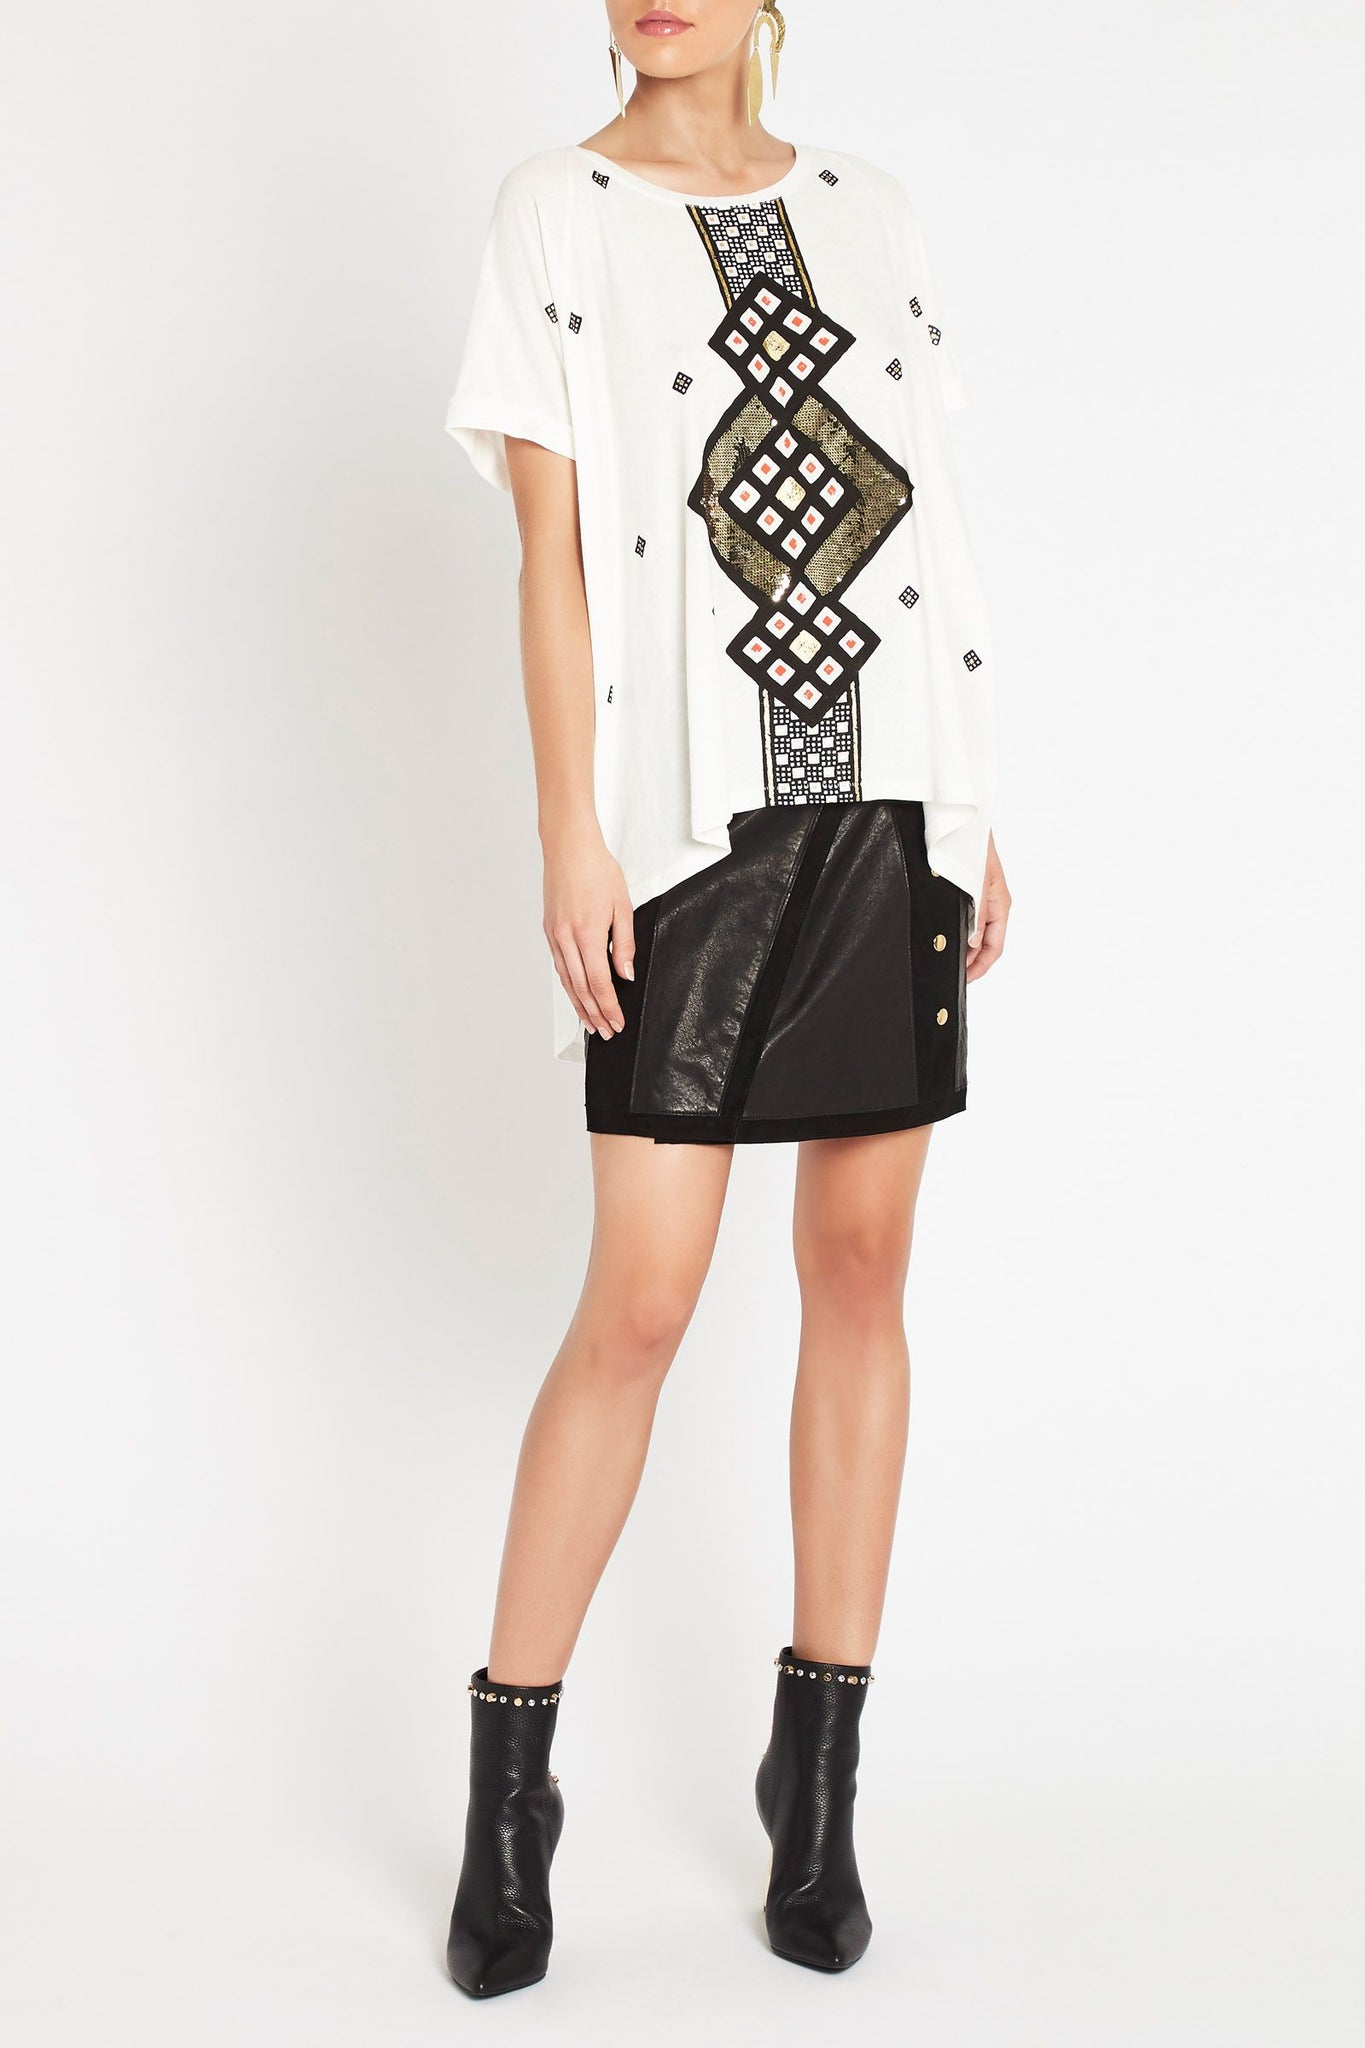 SASS & BIDE FOR THE WORLD TEE - sisterfield